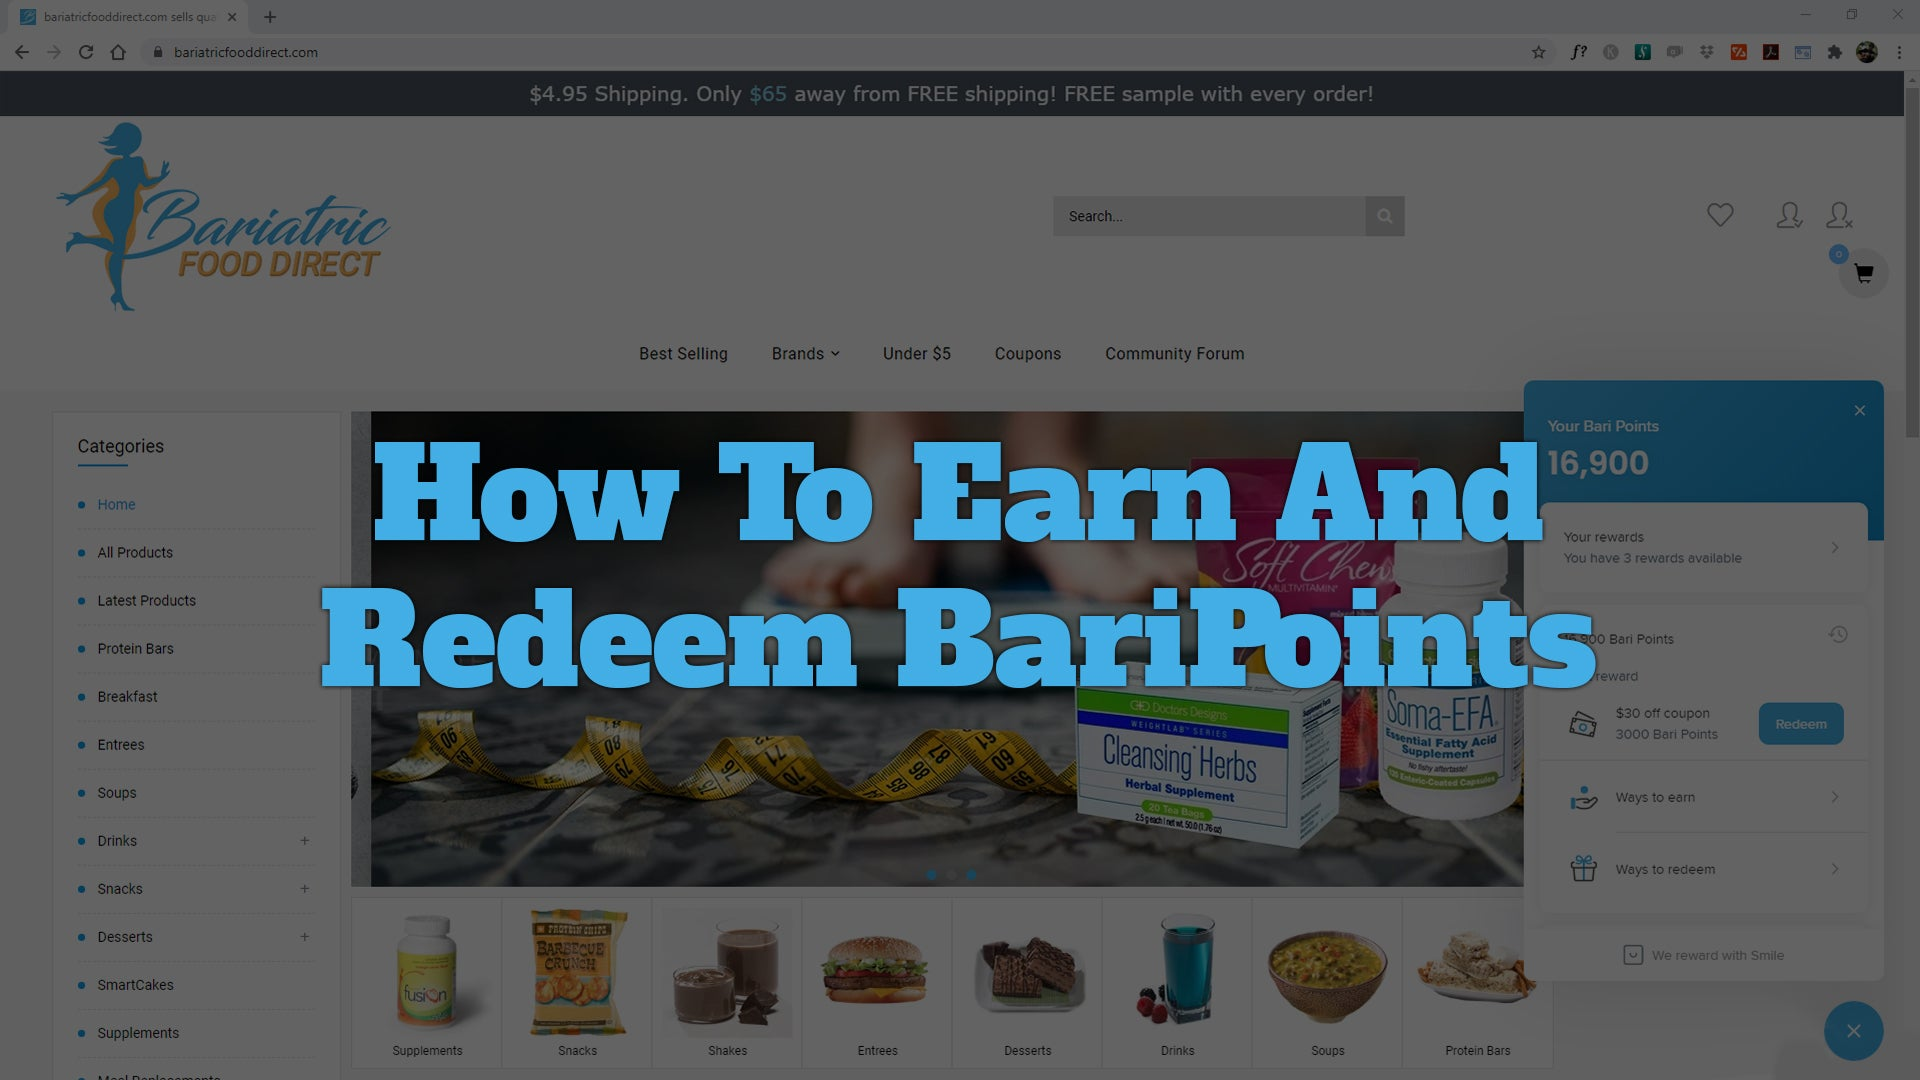 The BariPoint Rewards Program